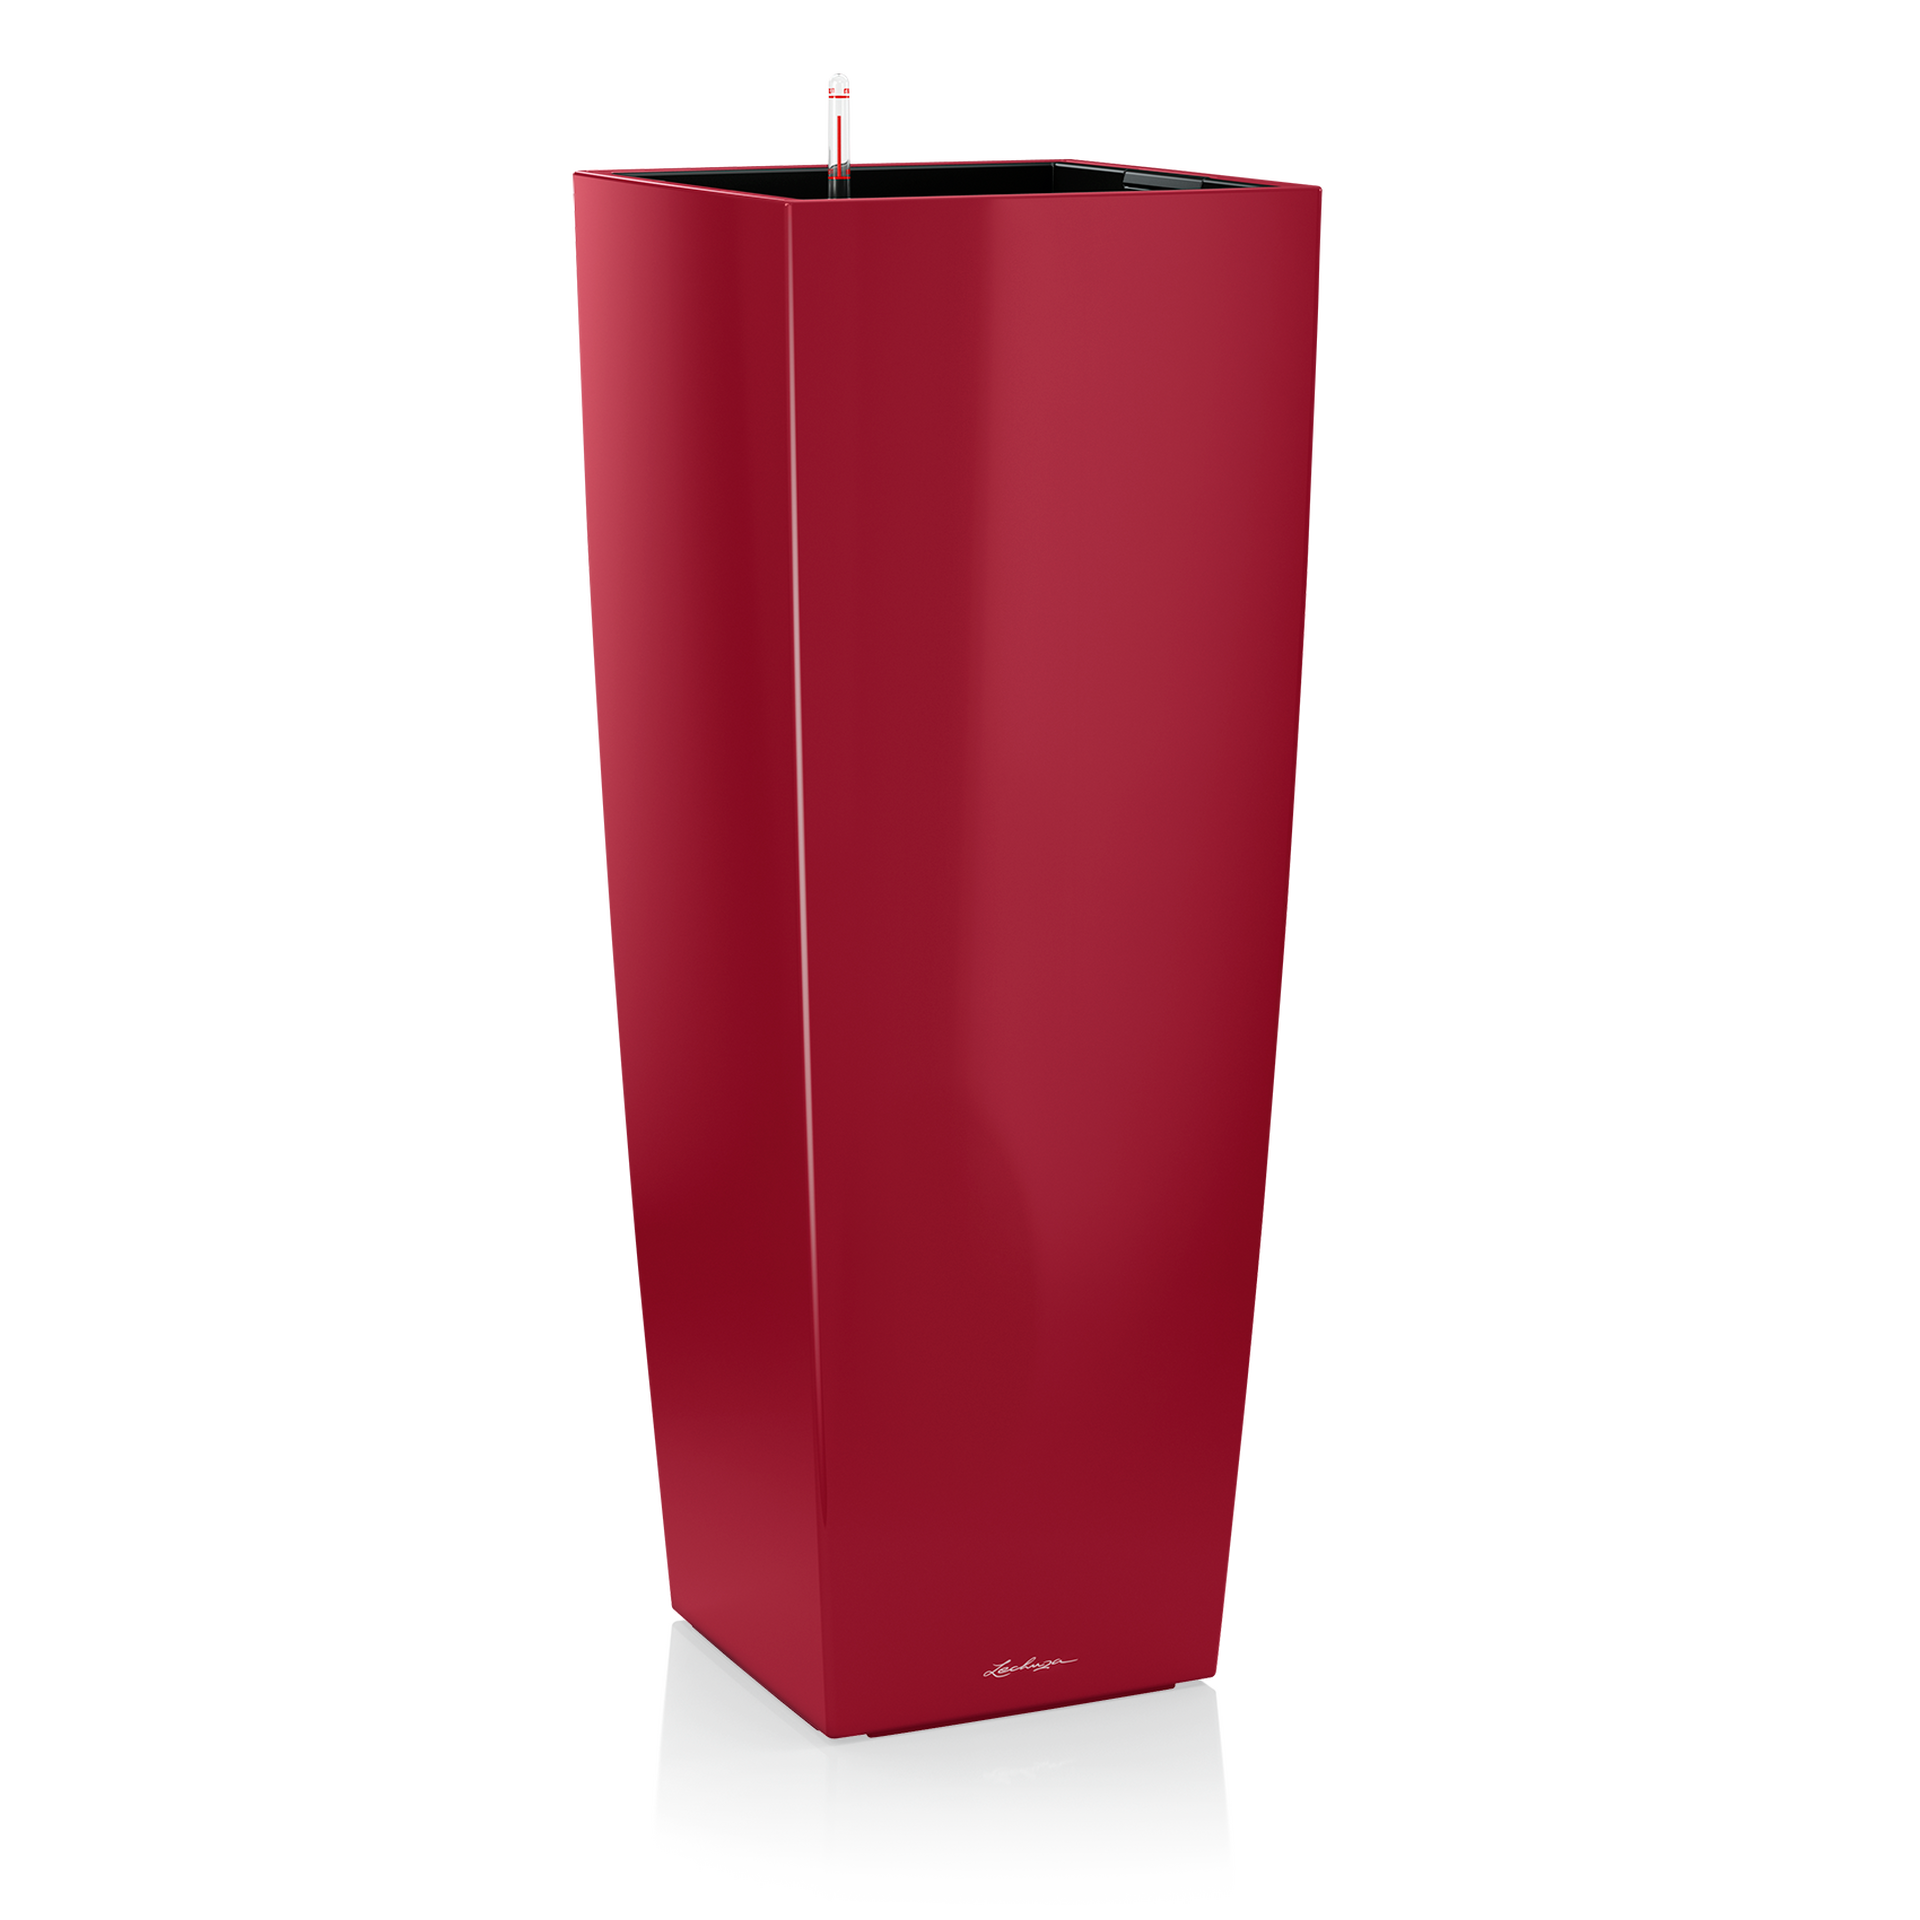 CUBICO ALTO scarlet red high-gloss